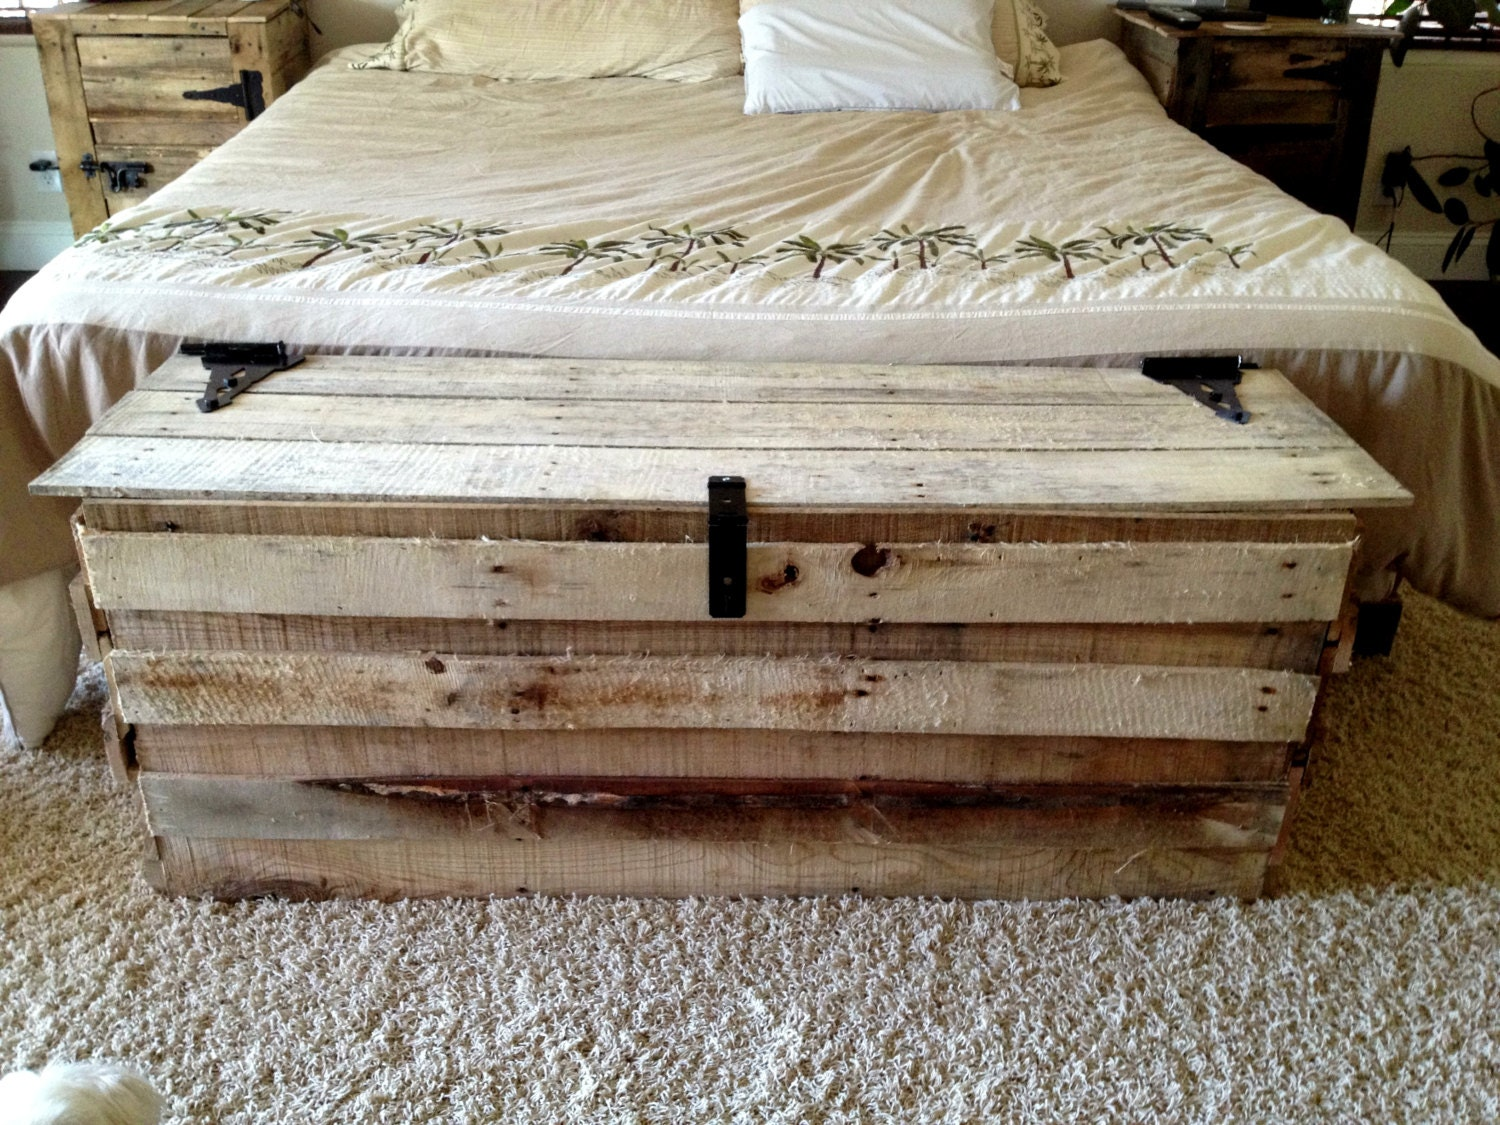 Wood Effect Kids Playroom Bedroom Storage Chest Trunk: Items Similar To Handmade Reclaimed Pallet Wood Trunk